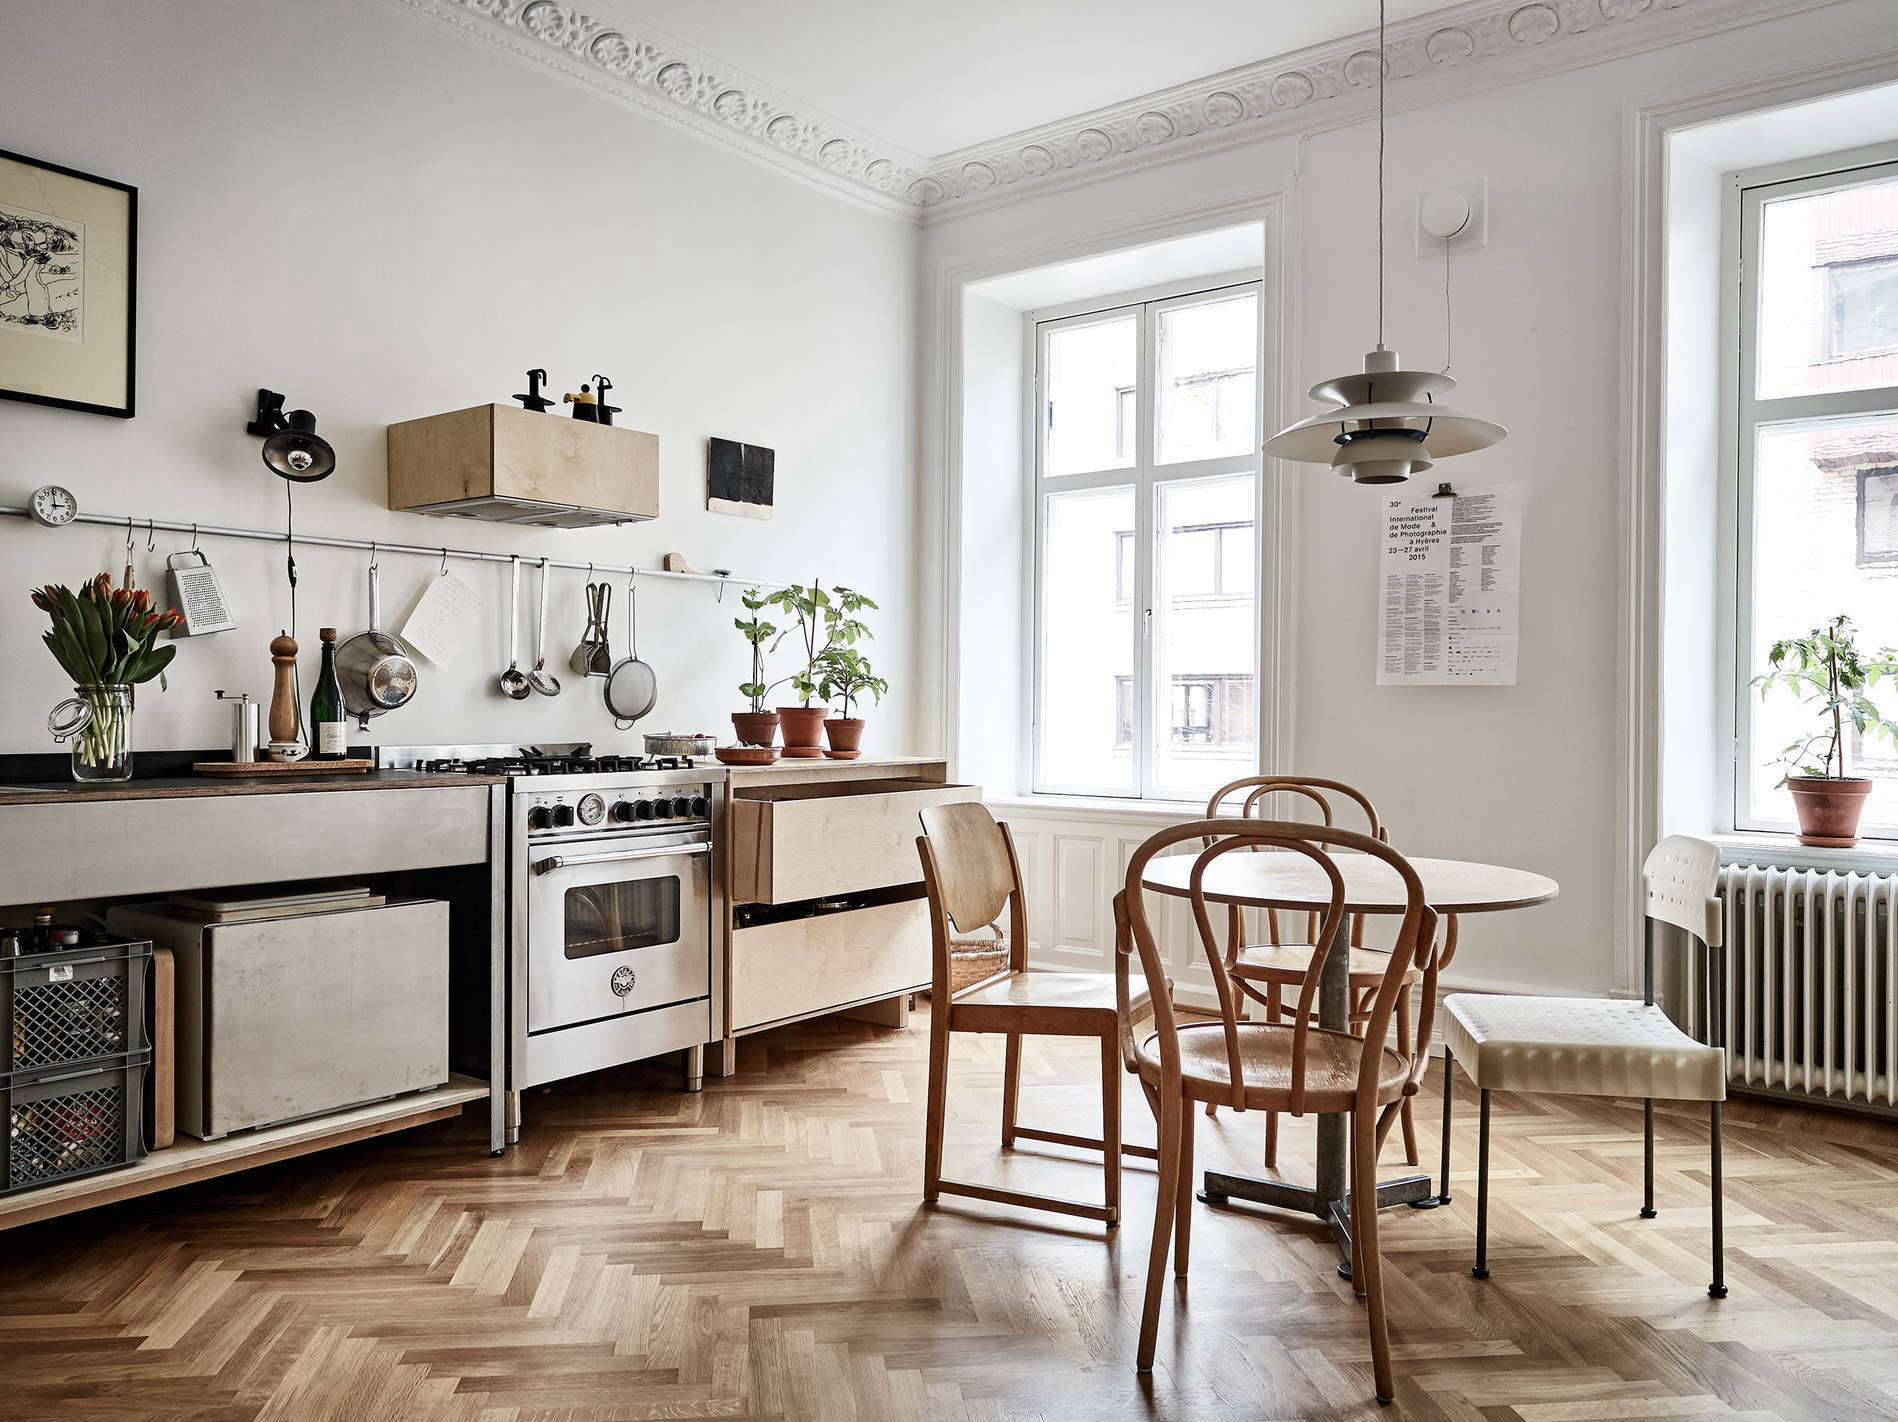 stadshem scandinavian kitchen - Scandinavian Kitchen Design 2